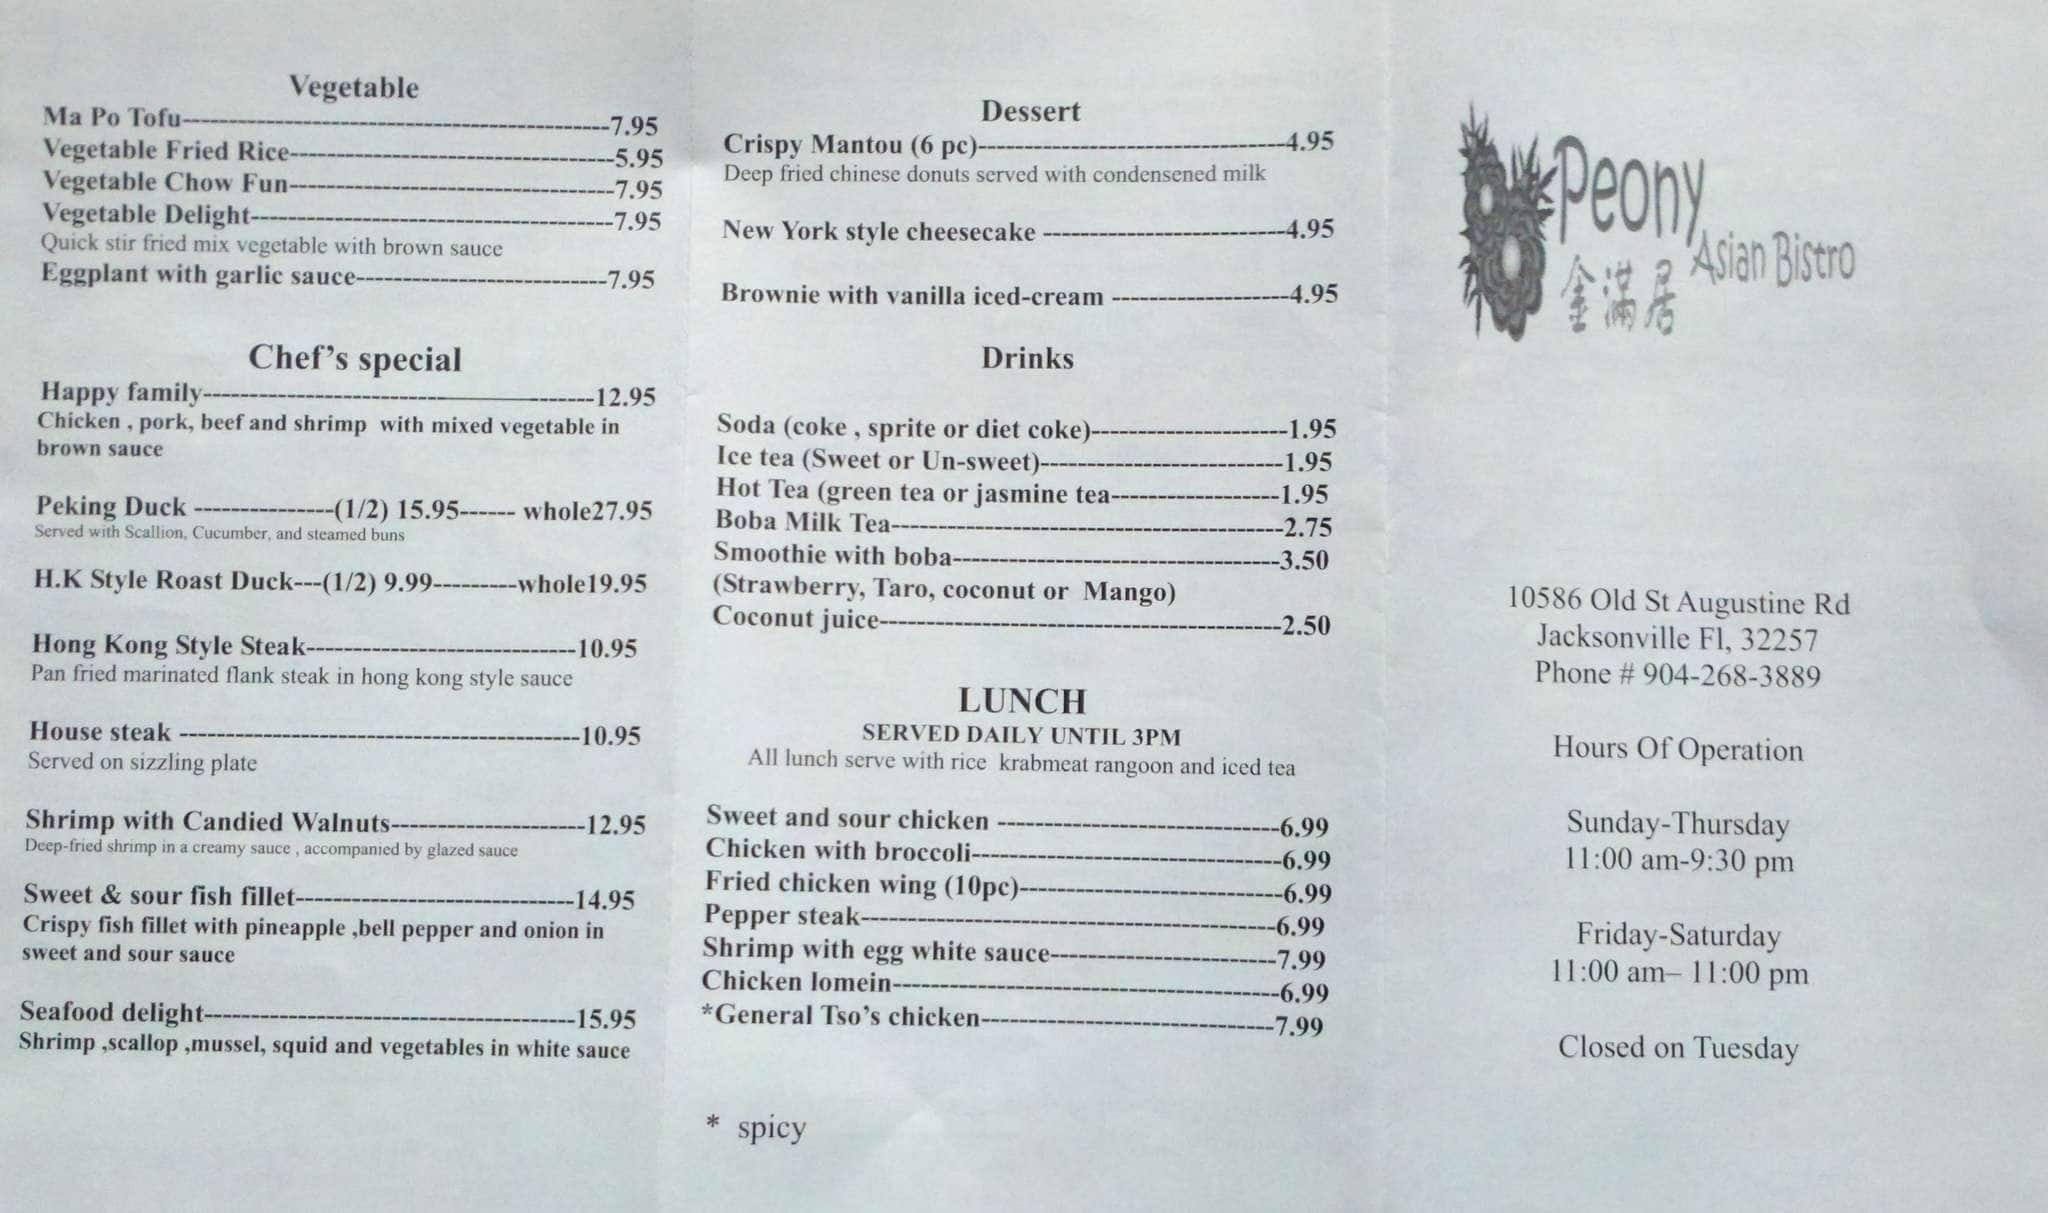 Soi Asian Bistro Menu Dddbbdcbfcabee